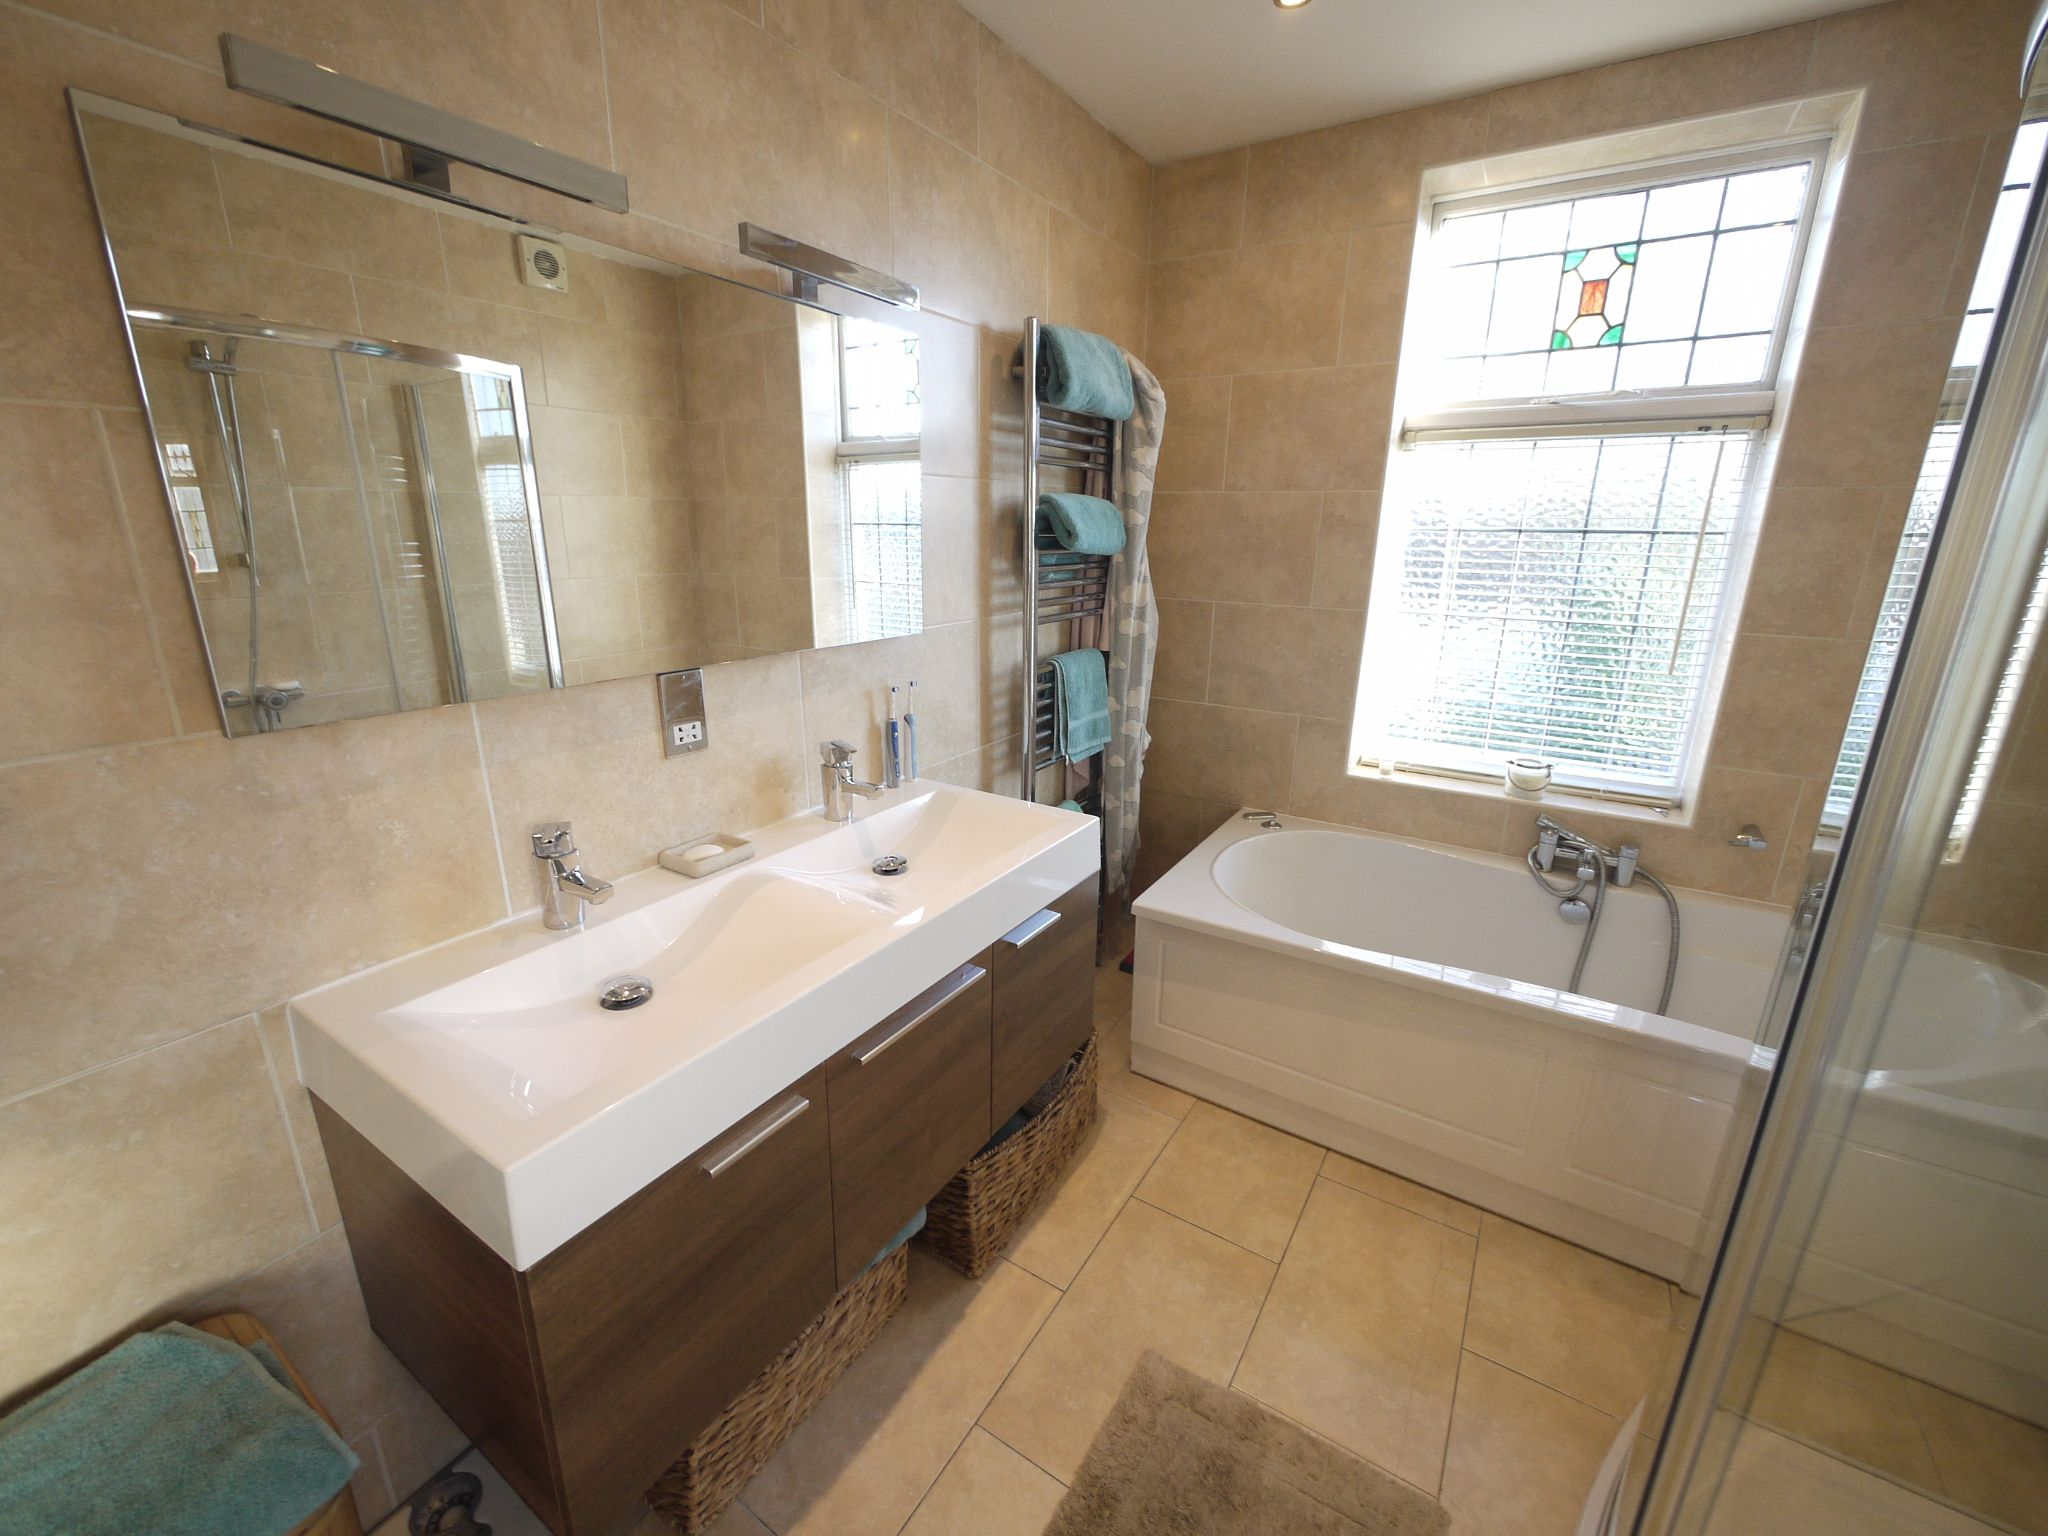 4 bedroom semi-detached house SSTC in Brighouse - Photograph 7.